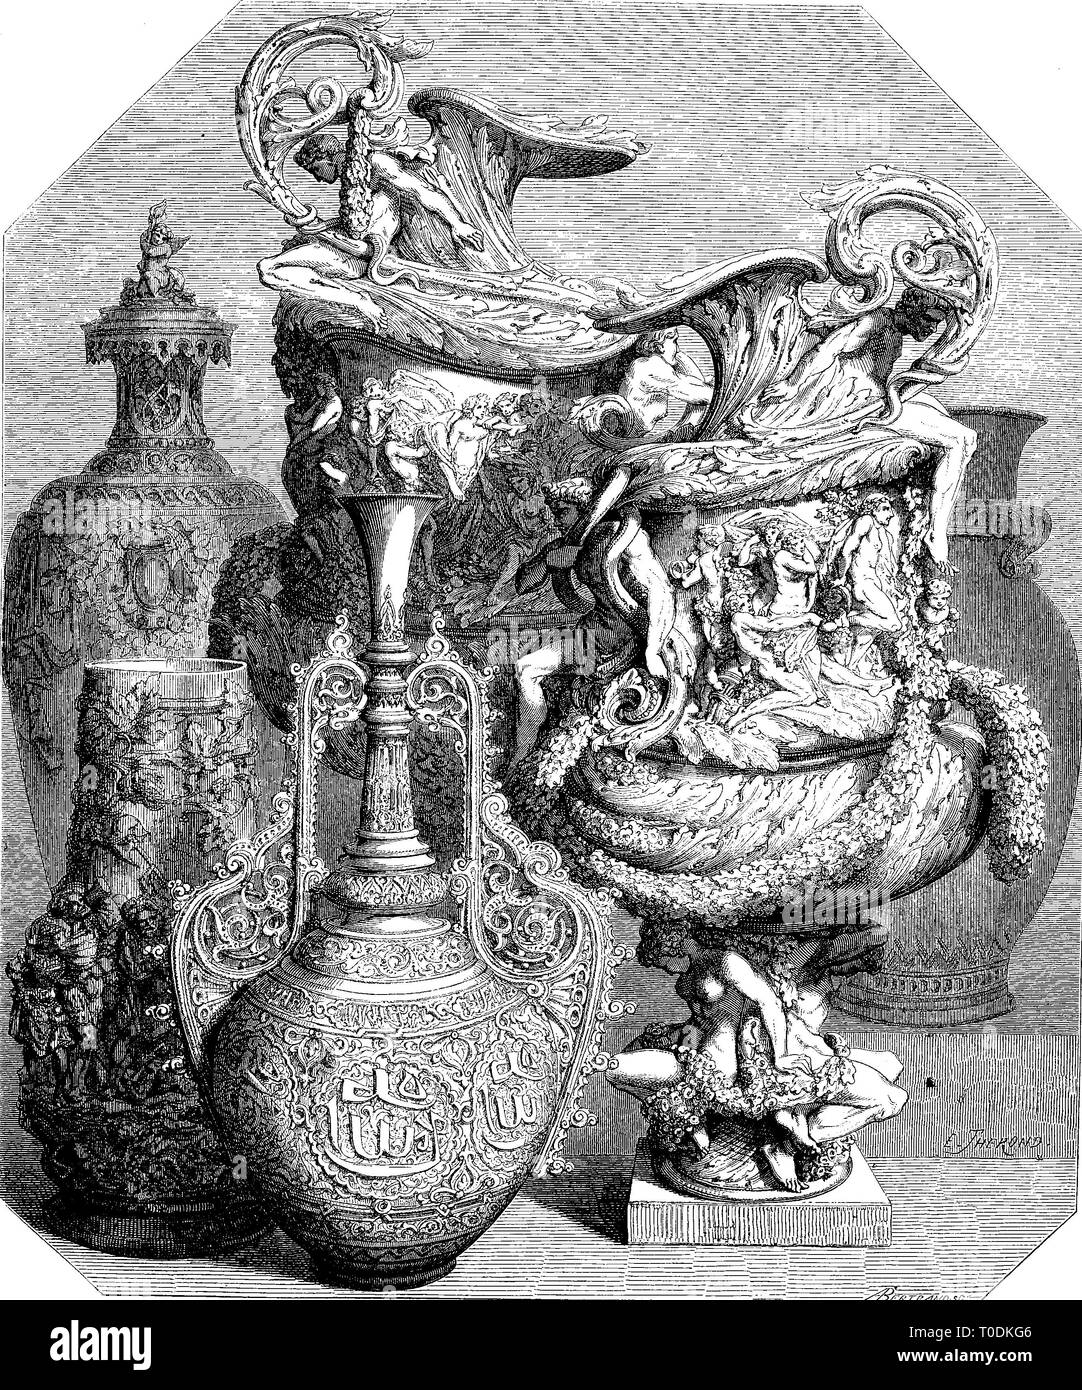 Digital improved reproduction, ceramics, vases at the world exhibition 1855, Paris, France, original woodprint from th 19th century - Stock Image